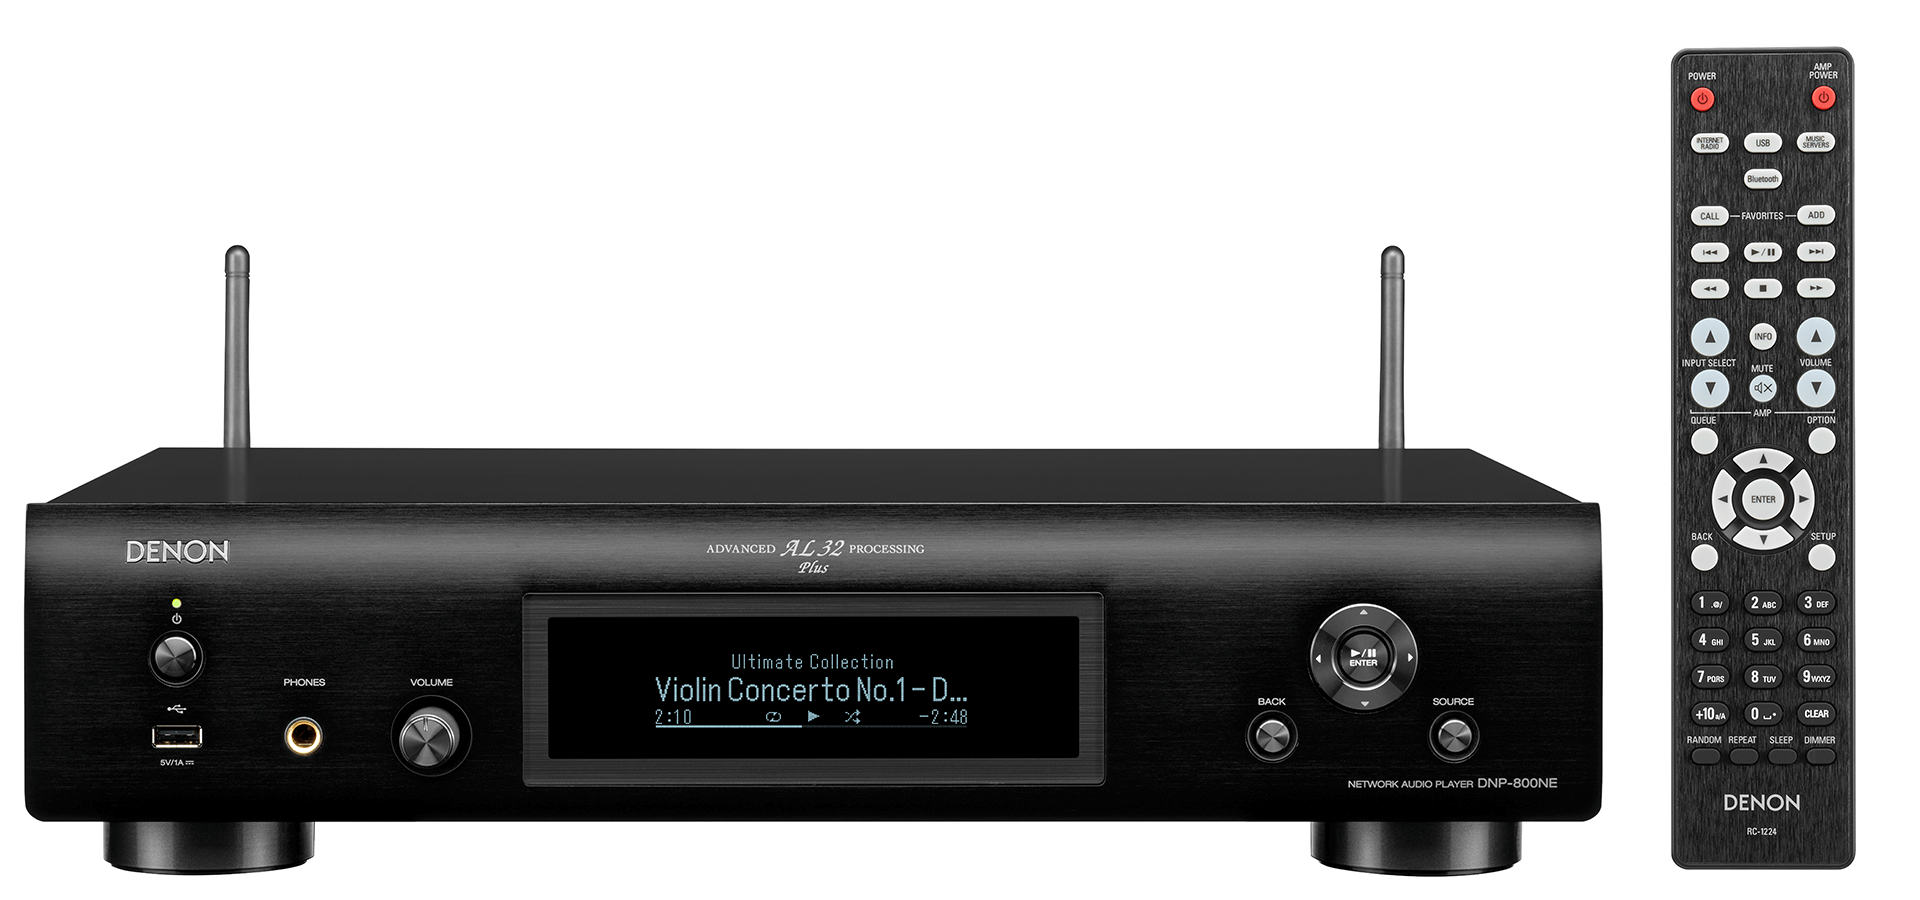 DNP-800NE Preto streamer de Áudio com bluetooth e AIRPLAY 2 Denon